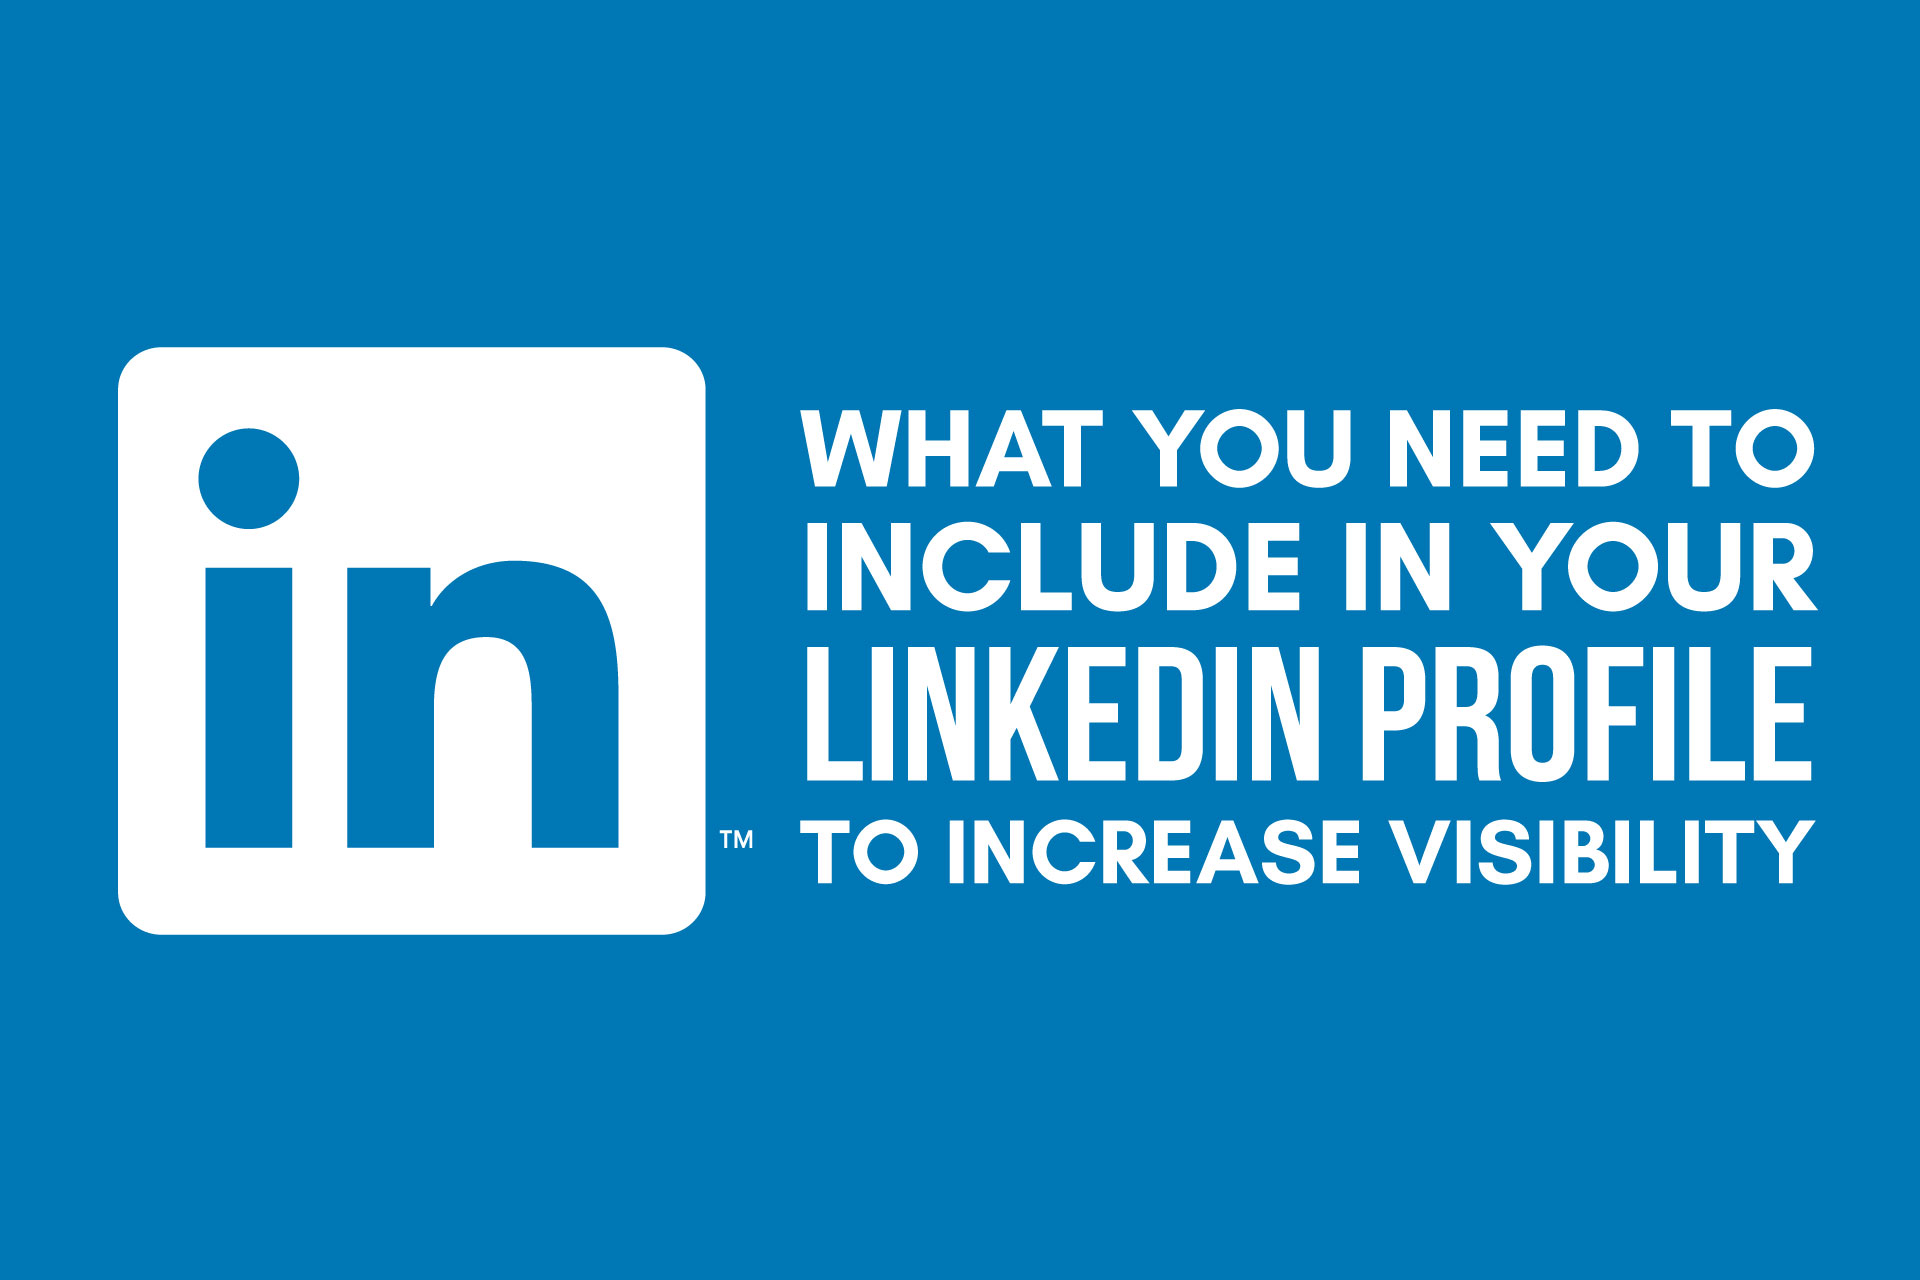 What you need to include in your LinkedIn profile to increase visibility